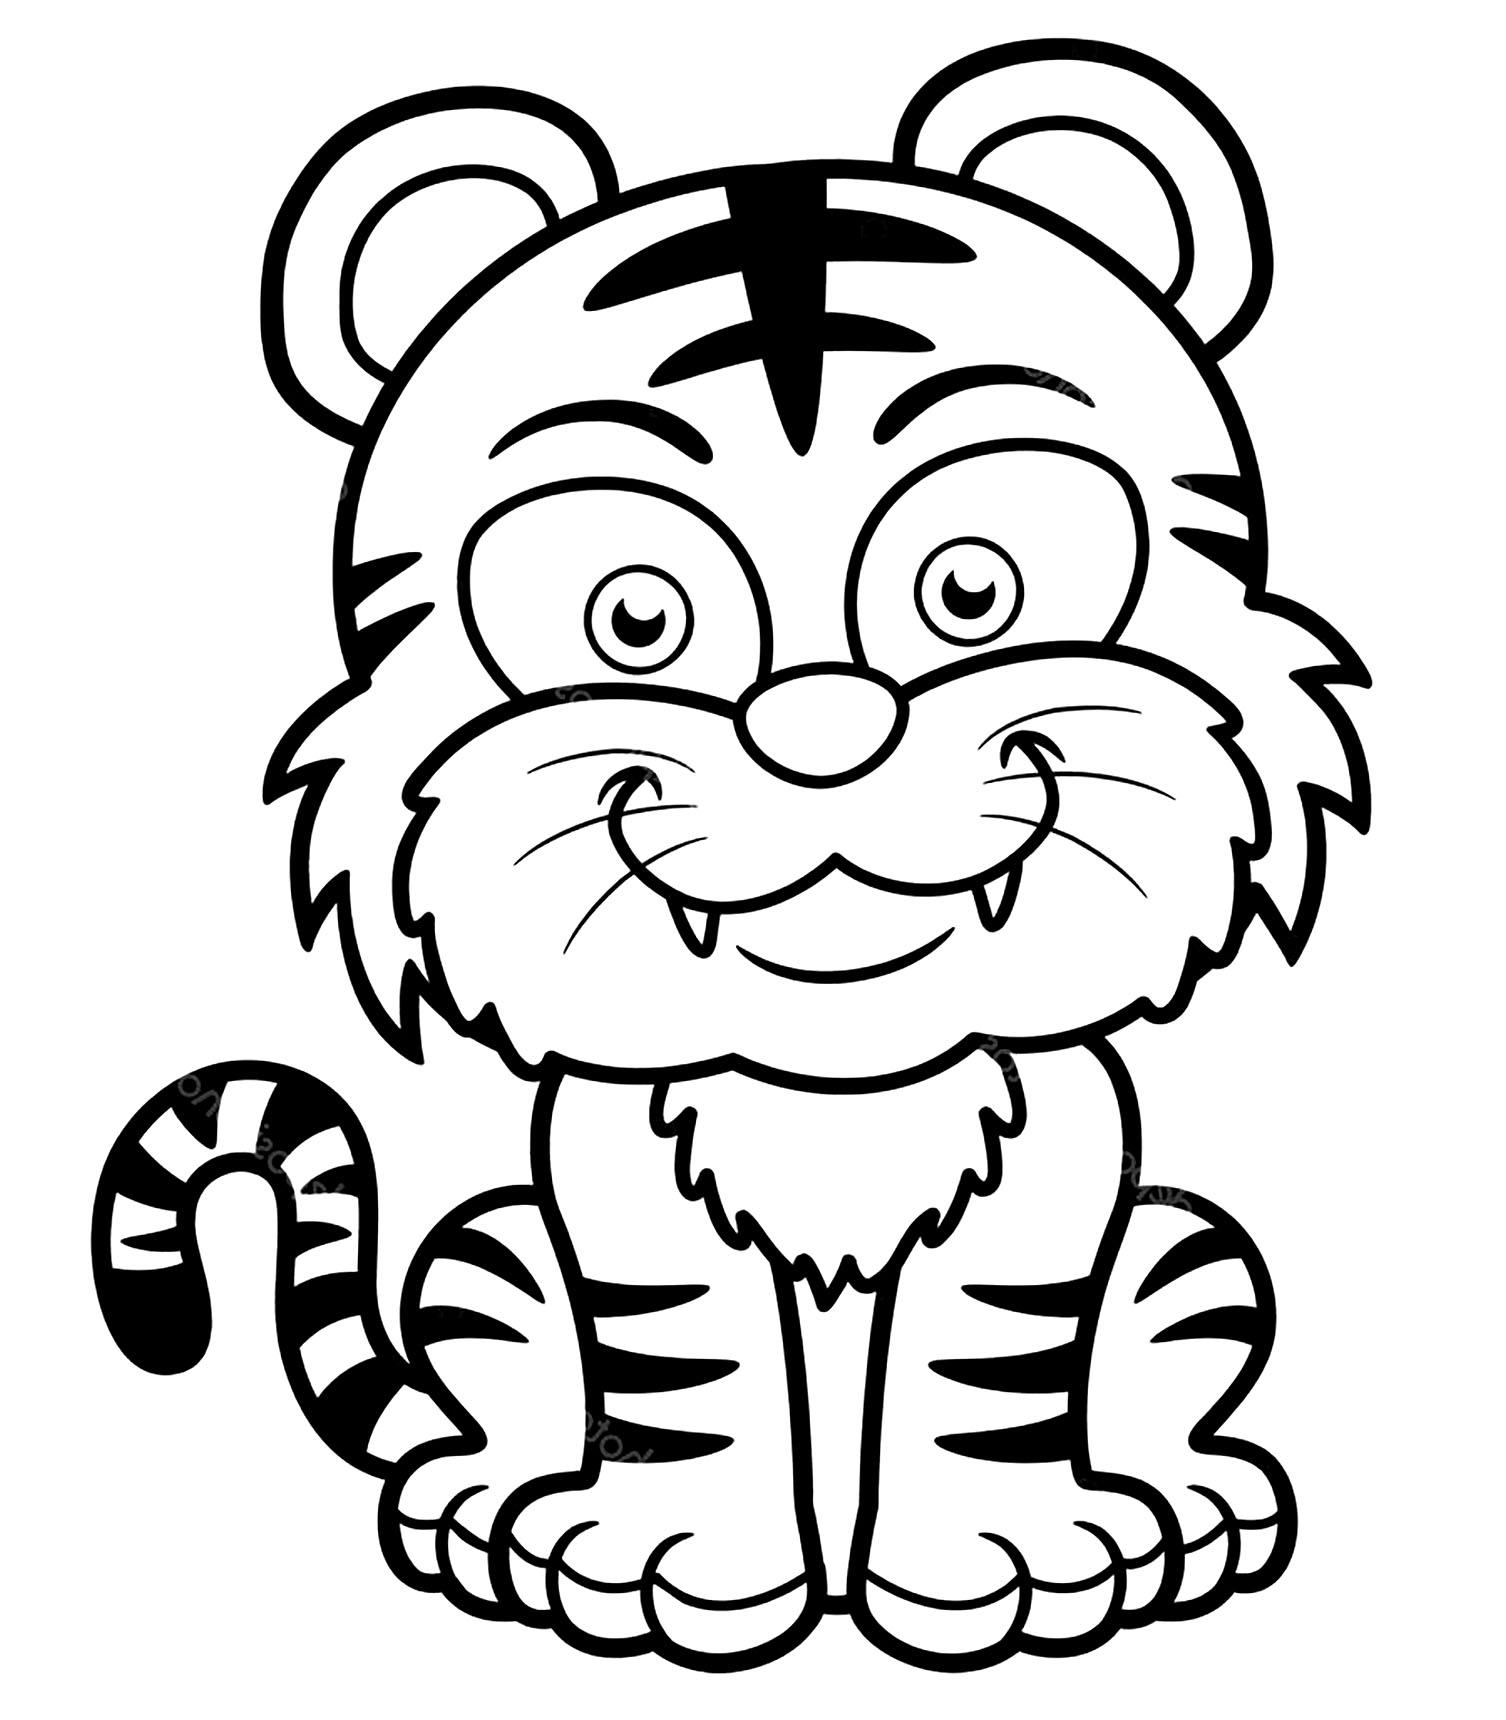 tiger images for colouring wild animals coloring pages pitara kids network tiger colouring images for